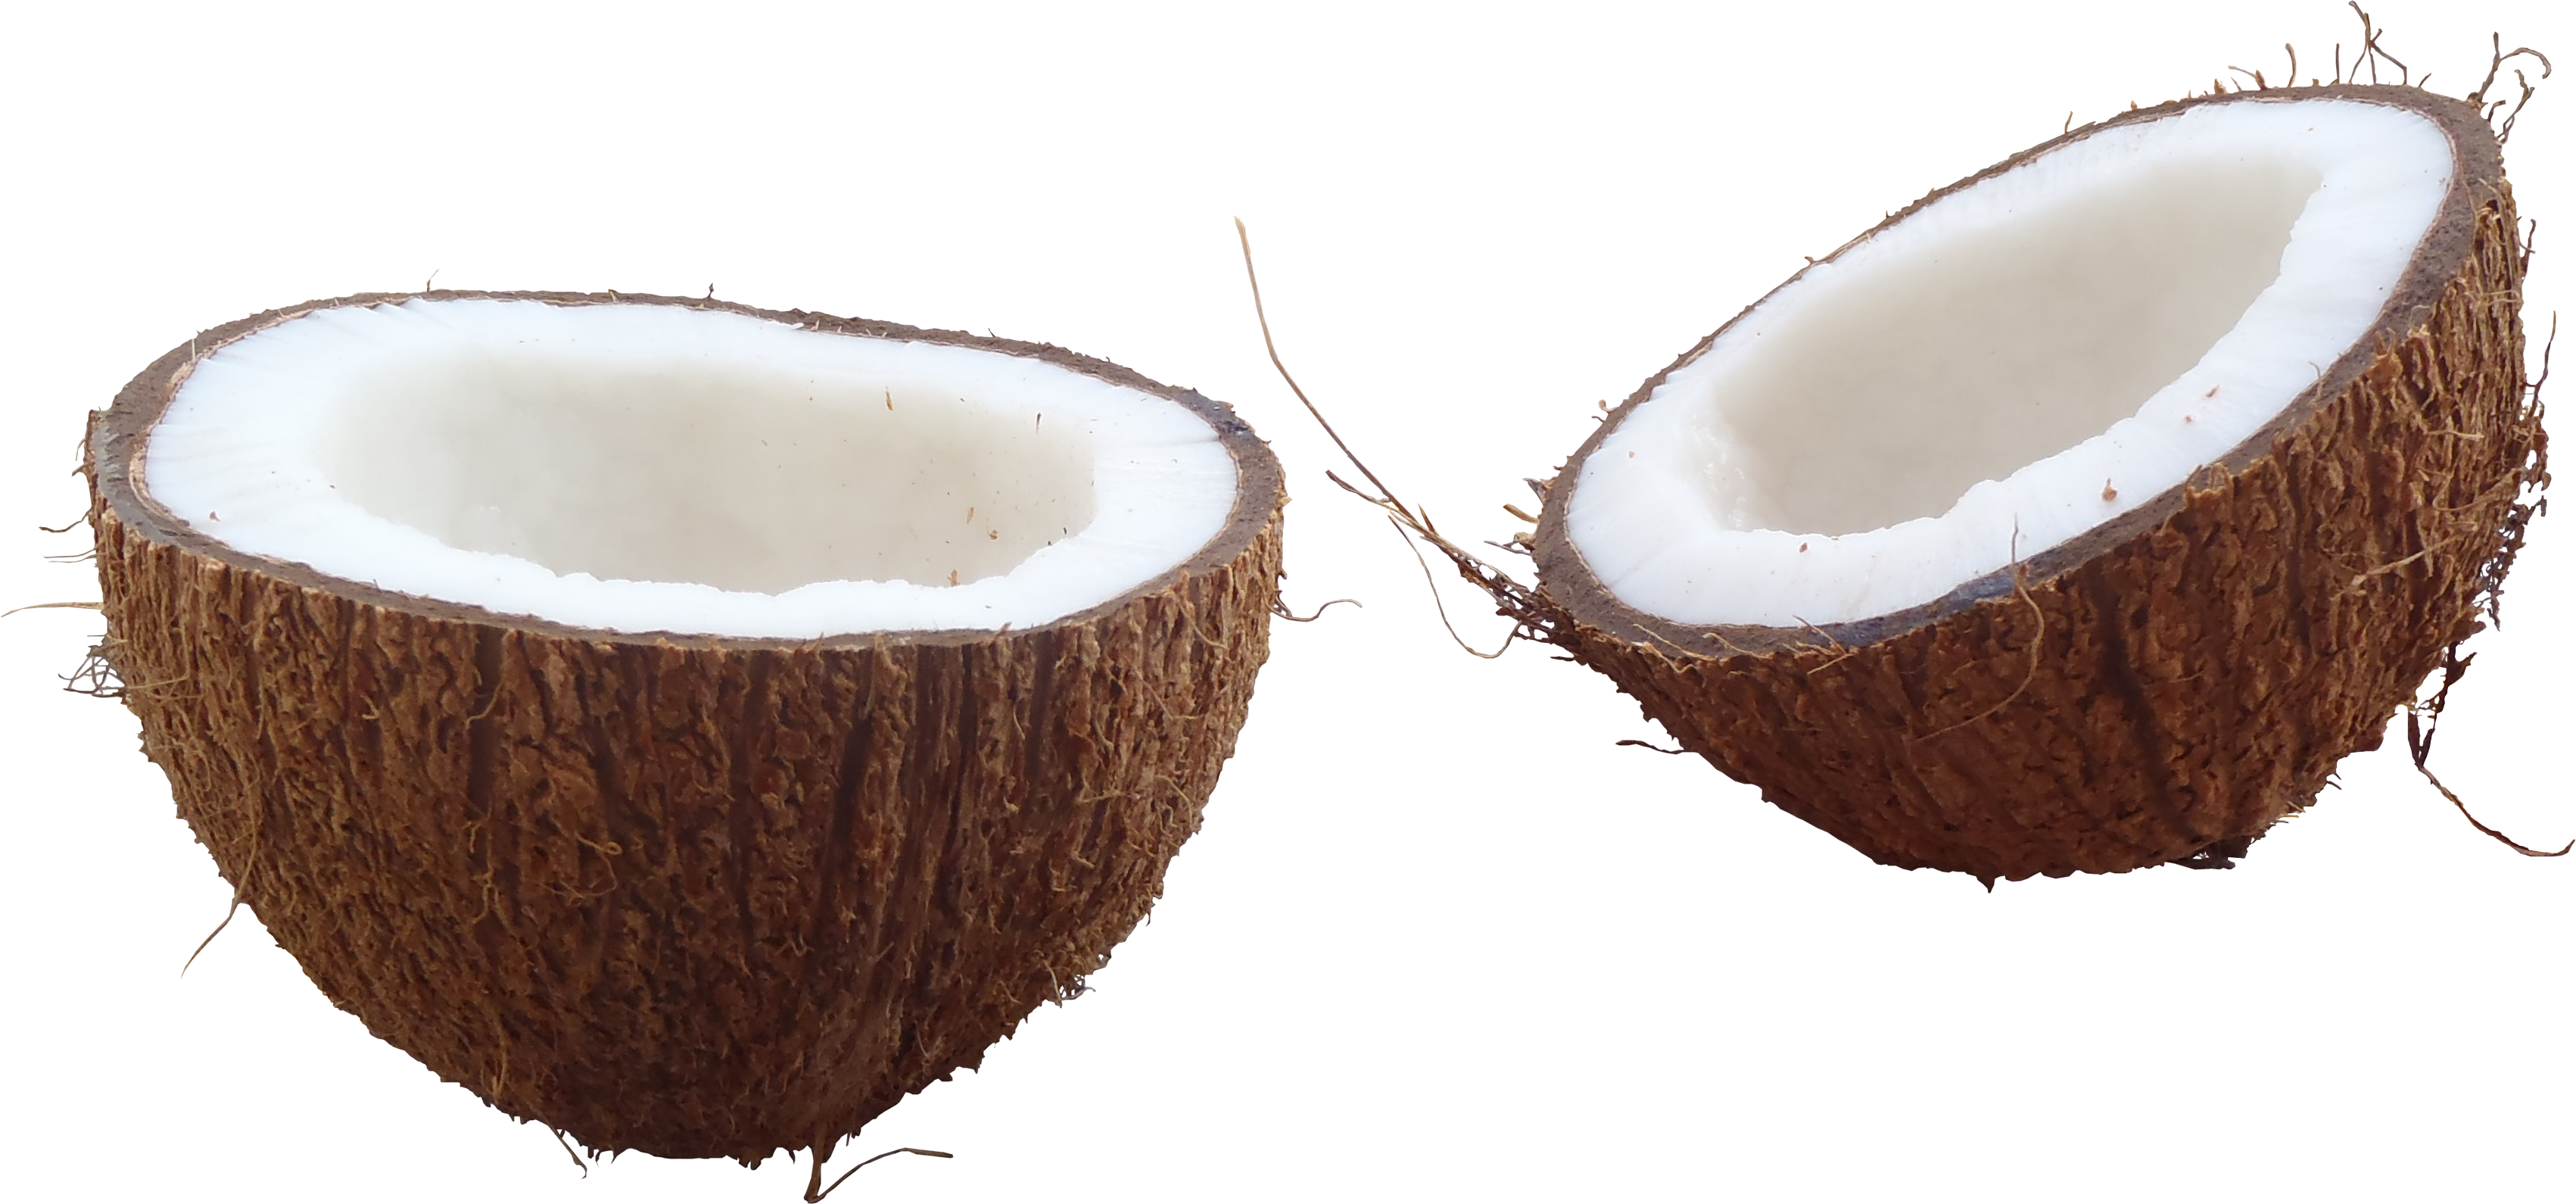 Coconut Image PNG Image